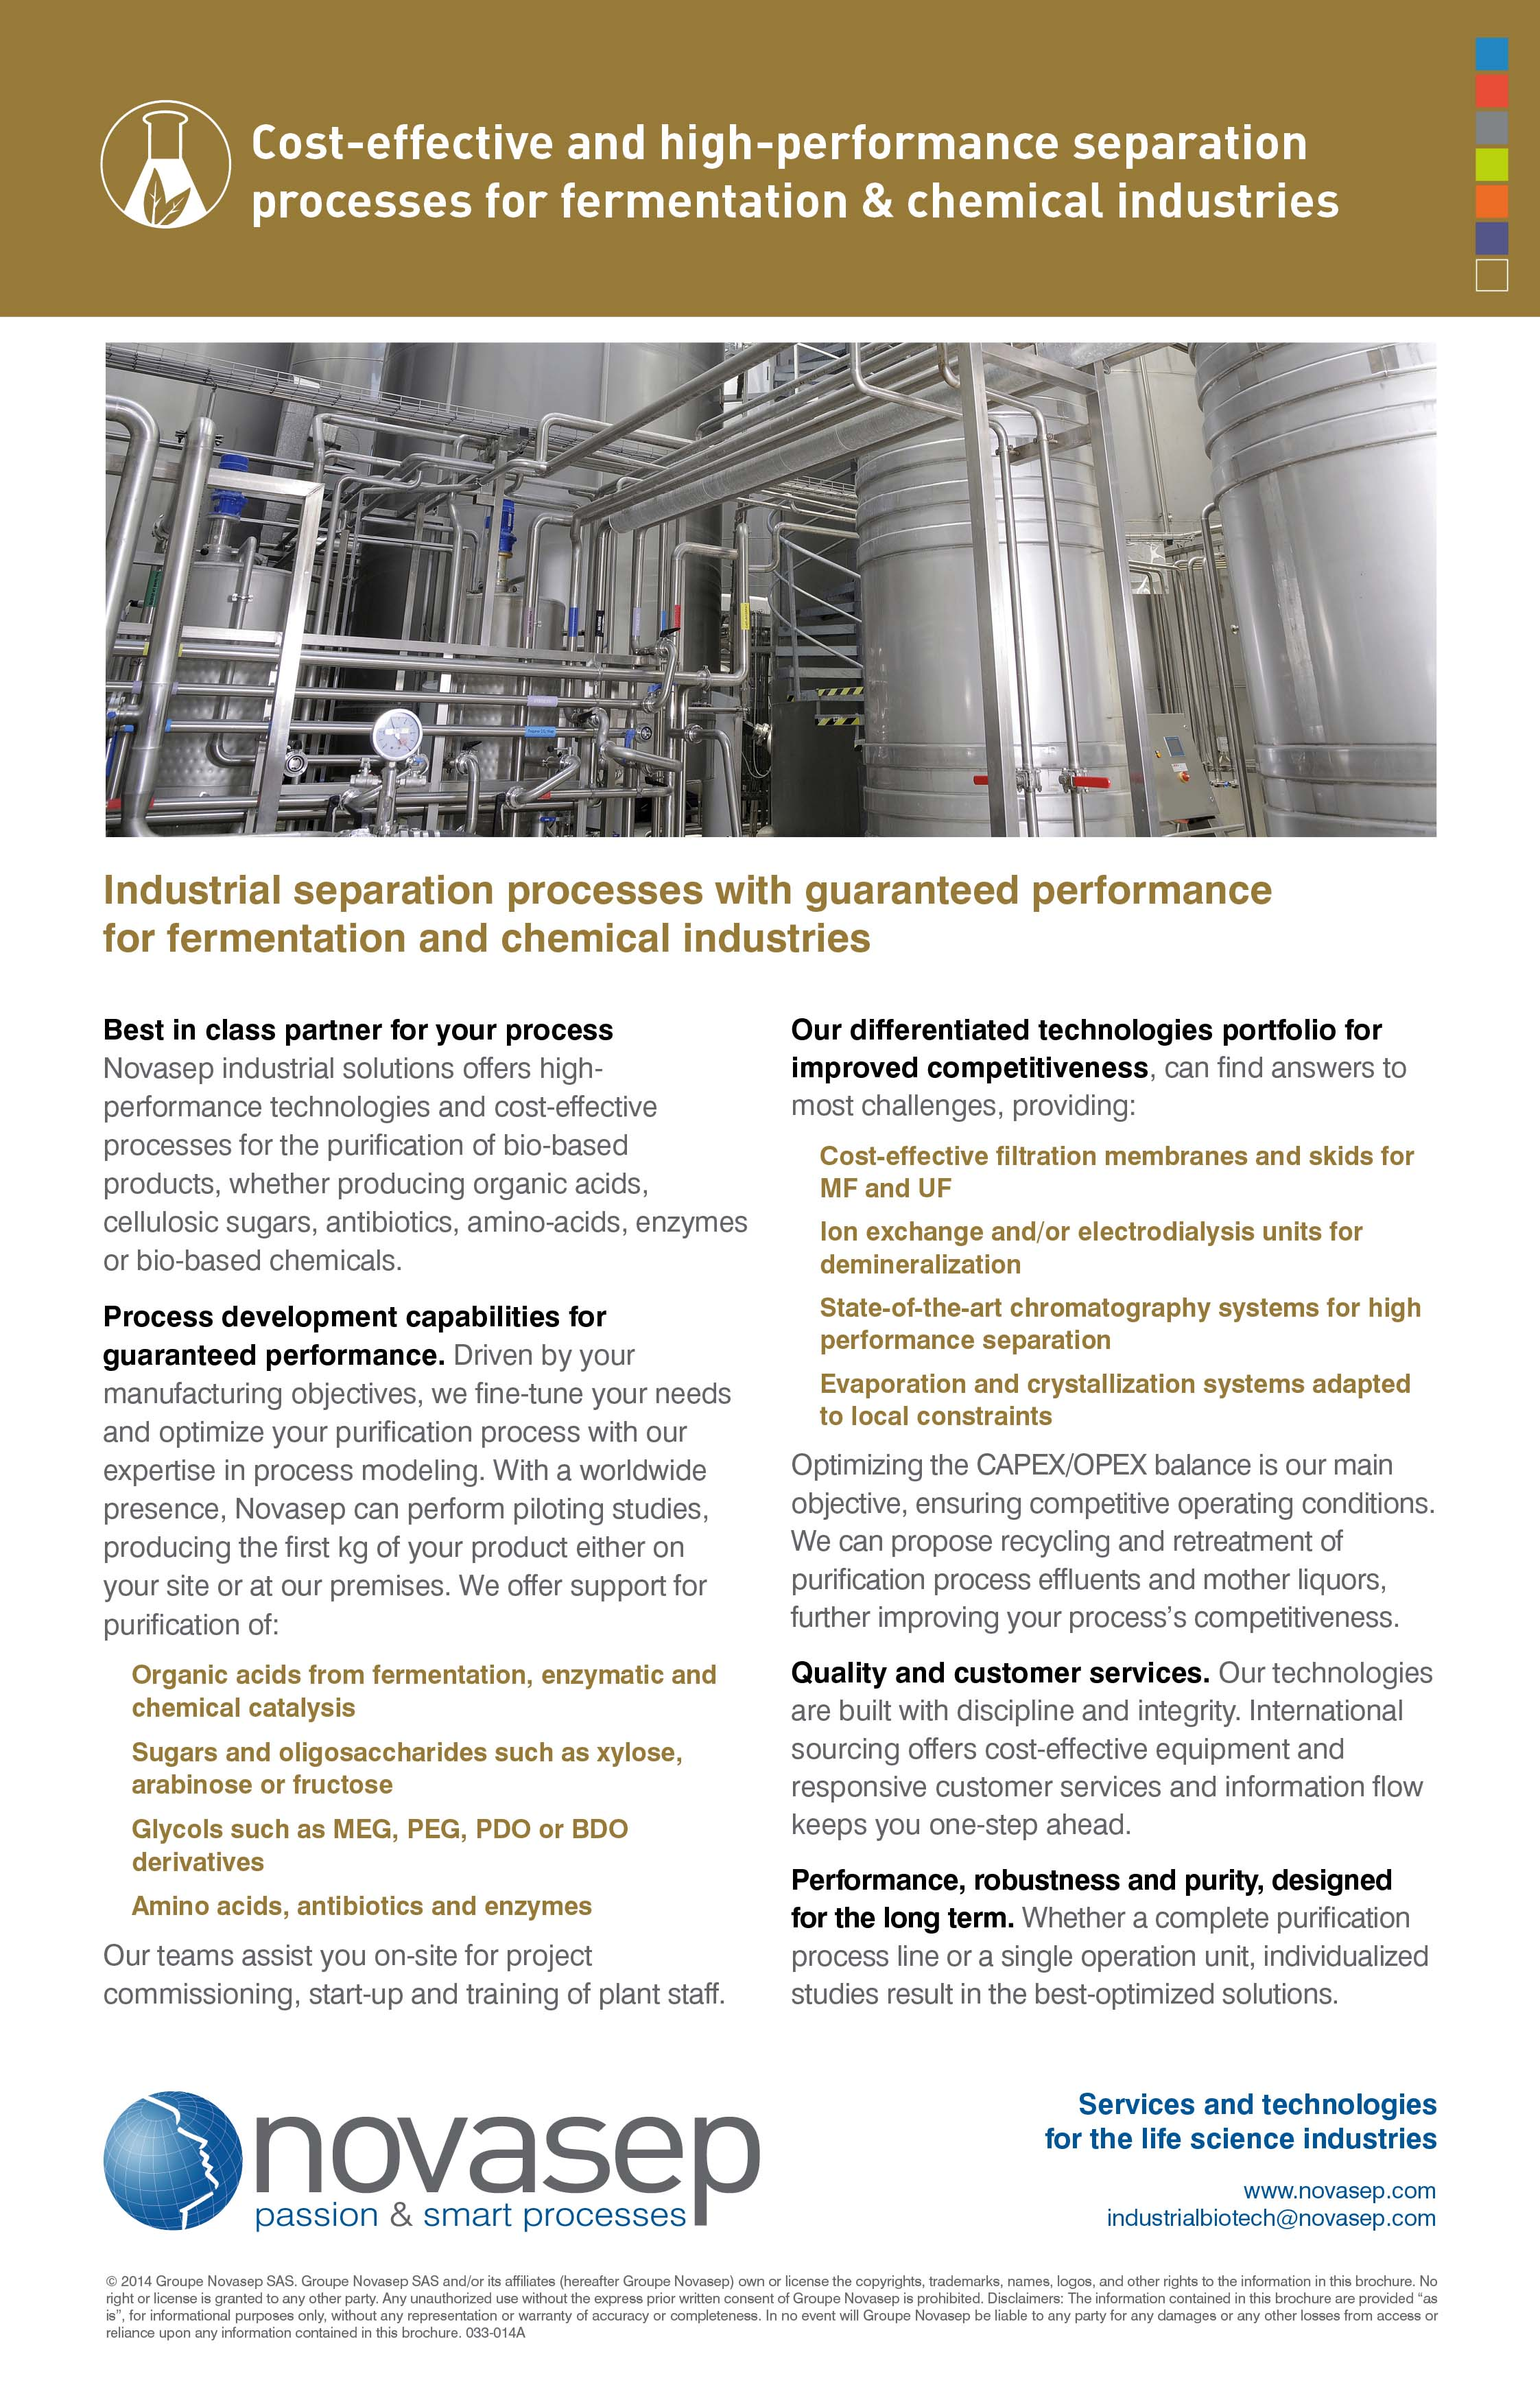 Global offer for fermentation and chemical commodities